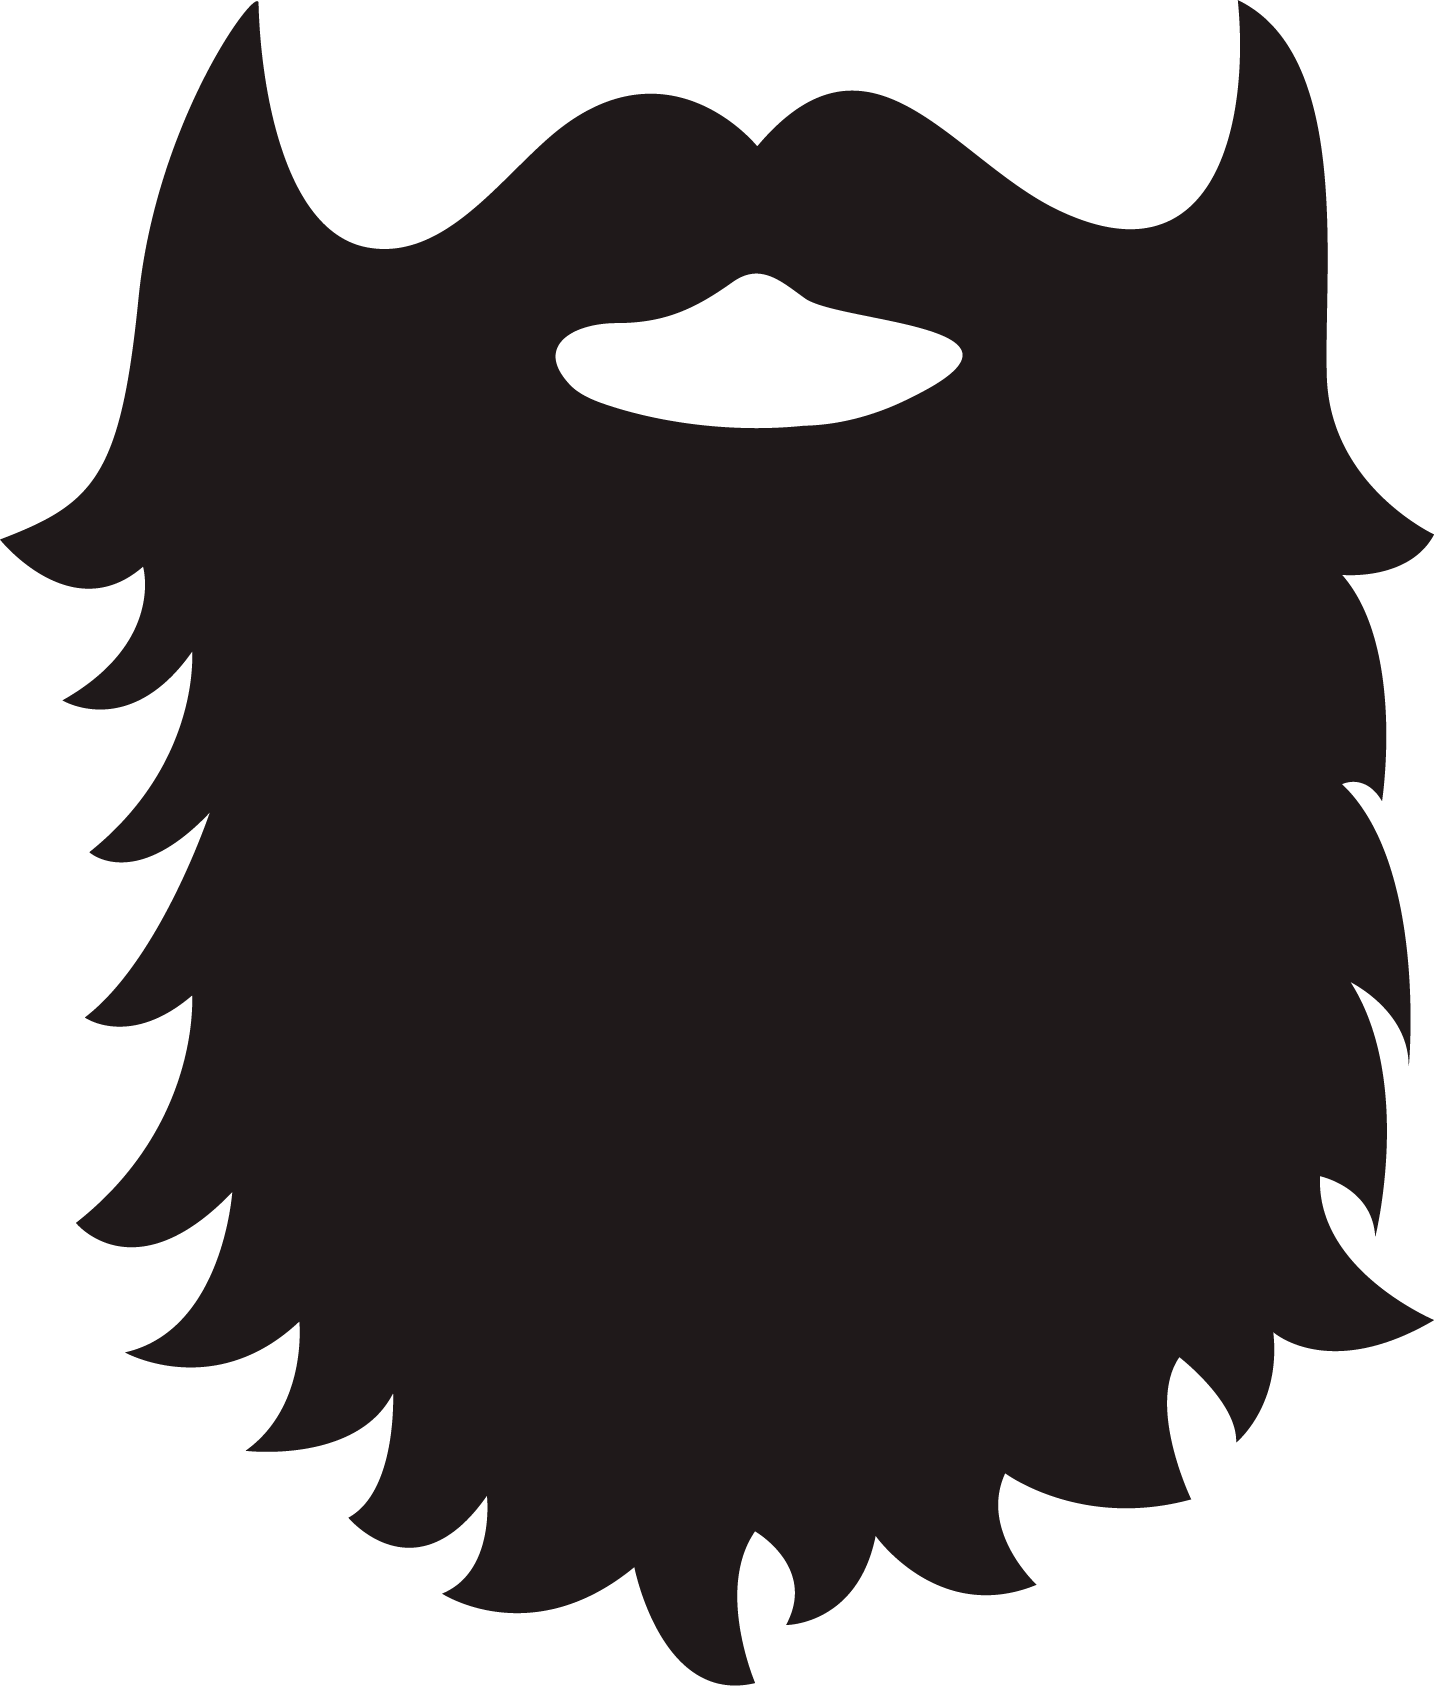 Lumberjack beard clipart vector free stock Beard Clipart Free | Free download best Beard Clipart Free on ... vector free stock